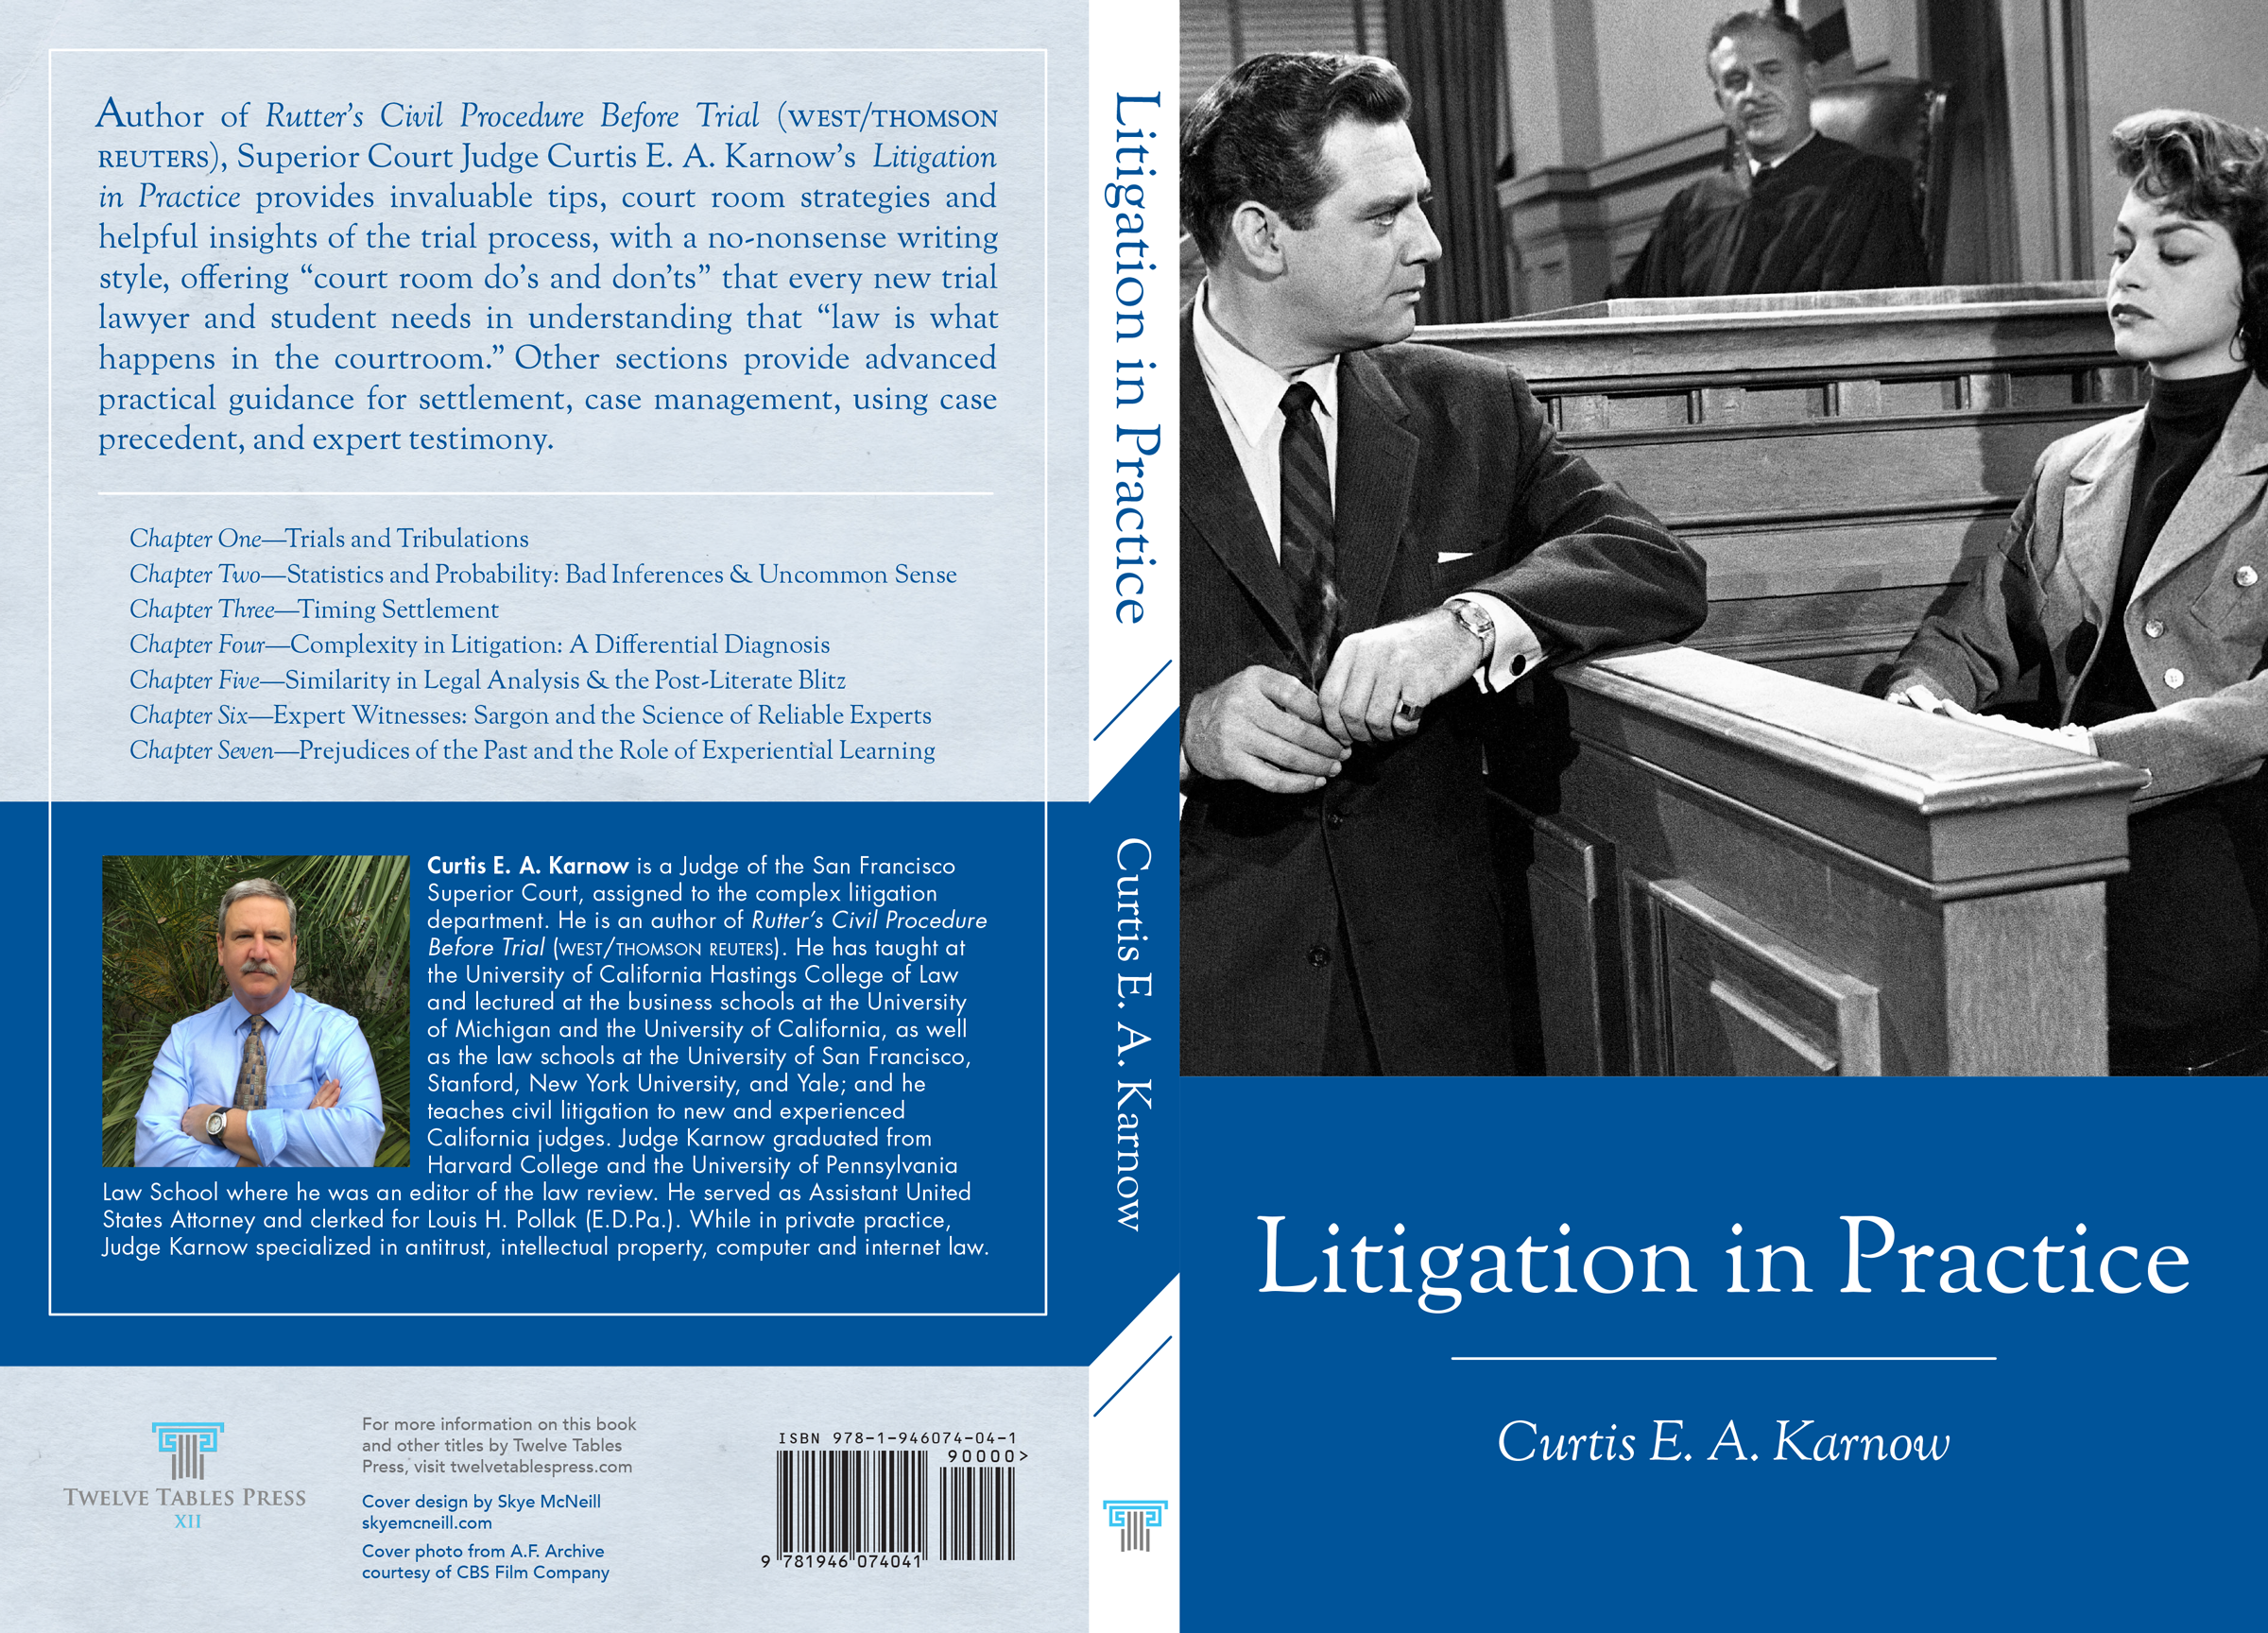 Karnow_Litigation_full-cover-spine_FINAL_02.01.17.png